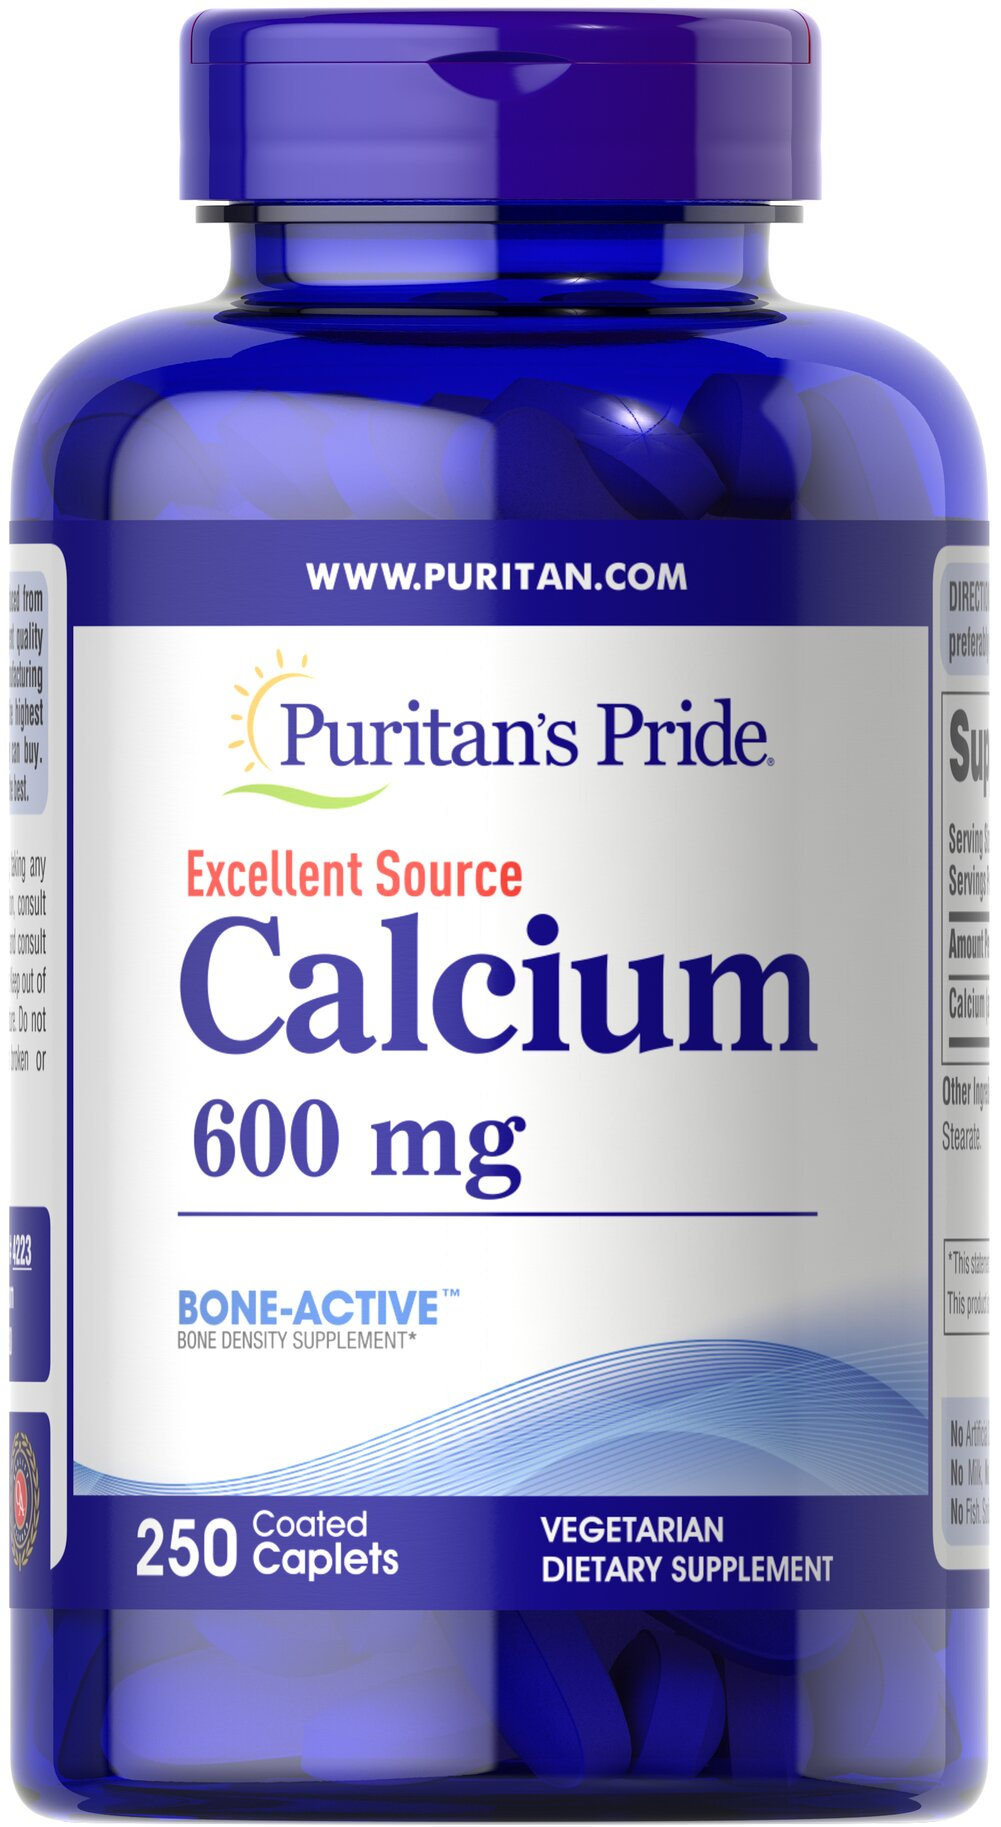 Calcium Carbonate 600 mg <p>Supports Bone Health**</p><p>Many factors contribute to the development of osteoporosis including sex, race, age, and hormonal status. It's important to remember that everyone loses bone mass with age. Regular exercise, a healthy diet and adequate Calcium intake helps maintain good bone health and may reduce the high risk of osteoporosis later in life.</p> 250 Coated Caplets 600 mg $20.59